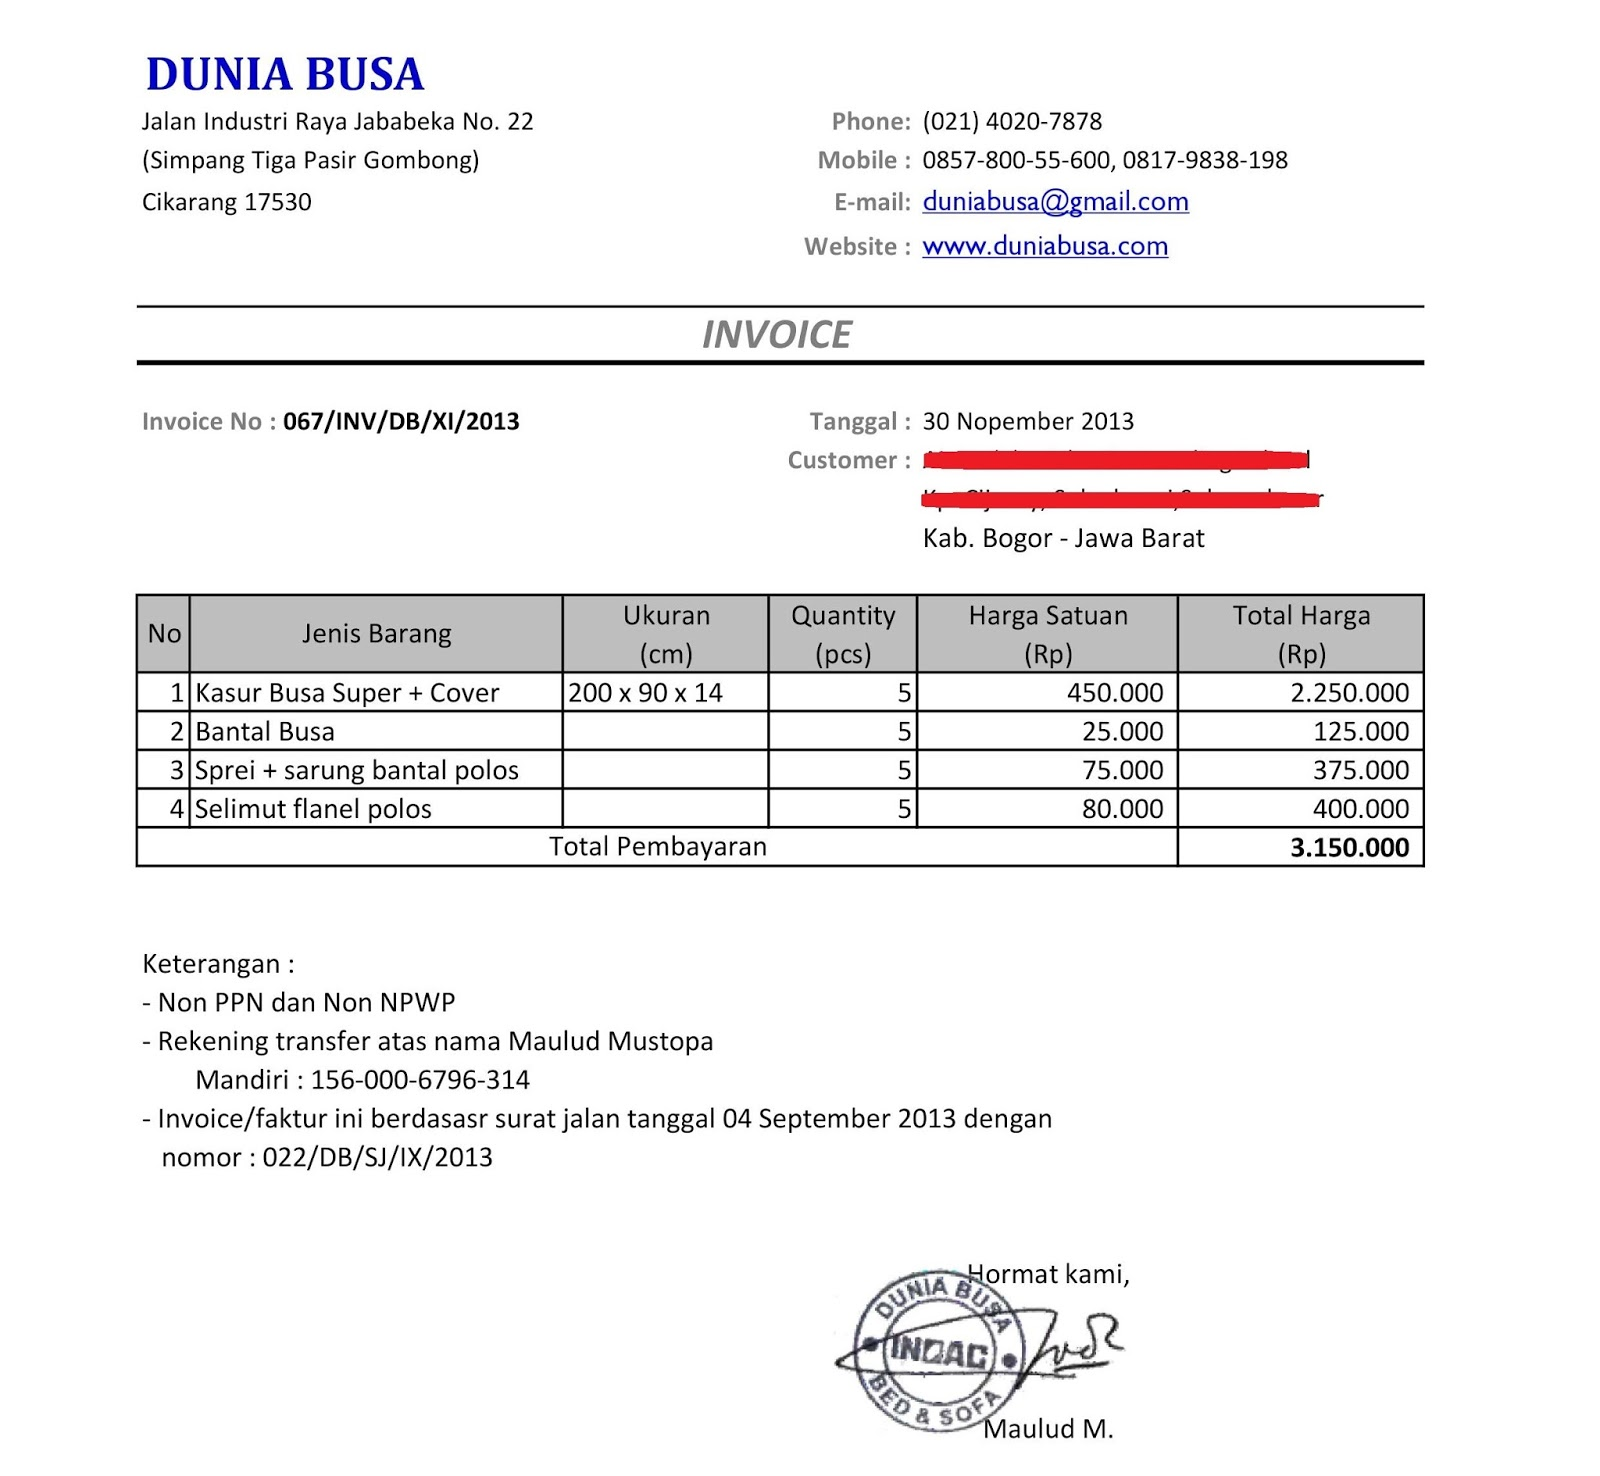 Darkfaderus  Gorgeous Free Invoice Online  Create Invoice Online  Invoice Template  With Extraordinary Contoh Format Invoice Atau Surat Tagihan  Brankas Arsip  Free Invoice Online With Nice How To Make Invoices Also Invoice Template Microsoft In Addition Sample Invoice Consulting Services And Edmunds New Car Dealer Invoice As Well As How Do I Pay An Invoice On Paypal Additionally Quickbooks Export Invoice Template From Sklepco With Darkfaderus  Extraordinary Free Invoice Online  Create Invoice Online  Invoice Template  With Nice Contoh Format Invoice Atau Surat Tagihan  Brankas Arsip  Free Invoice Online And Gorgeous How To Make Invoices Also Invoice Template Microsoft In Addition Sample Invoice Consulting Services From Sklepco